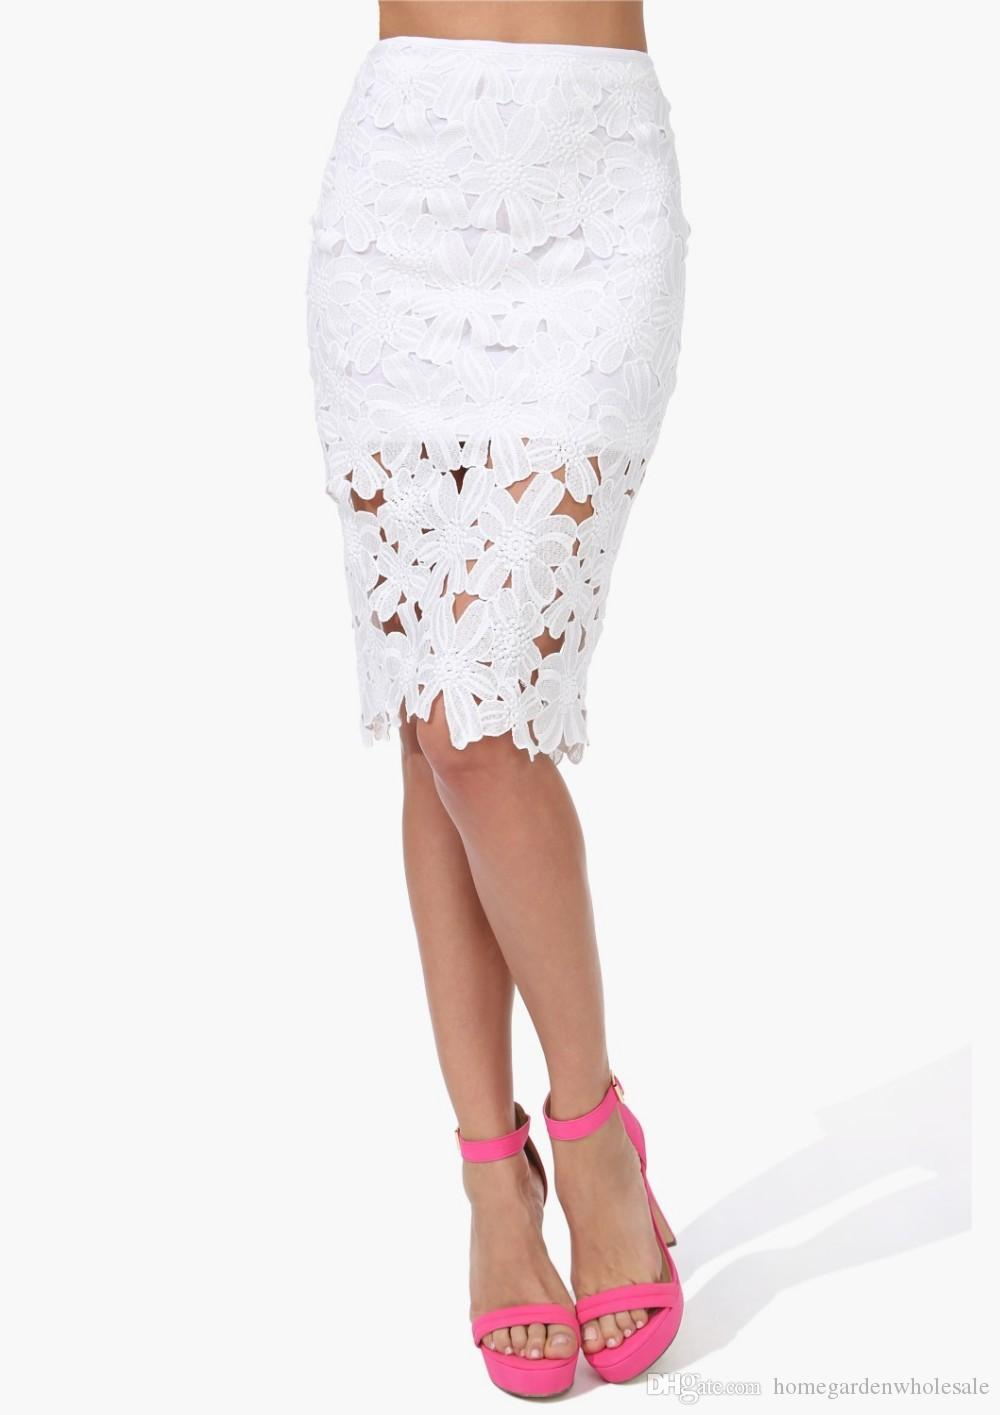 Fashion Zipper Stripes Package Hip Midi Skirt White Black Flower Crochet Hot Sale Women Sexy New Style Pencil Skirts